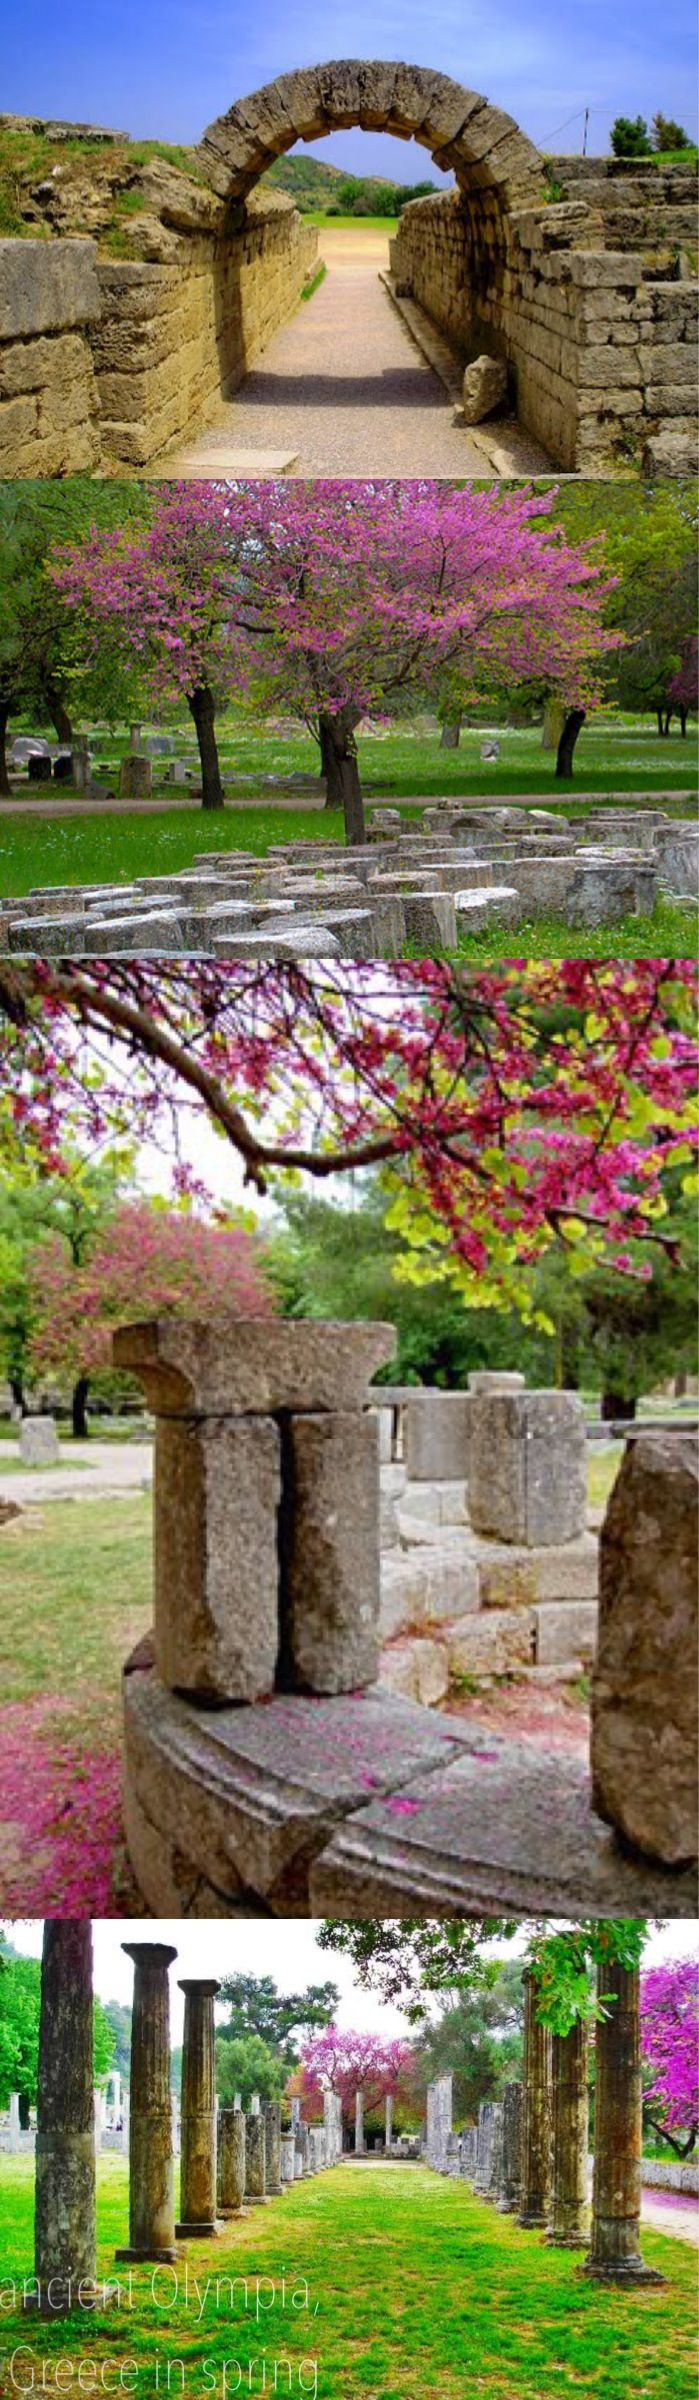 ancient Olympia, Greece in spring